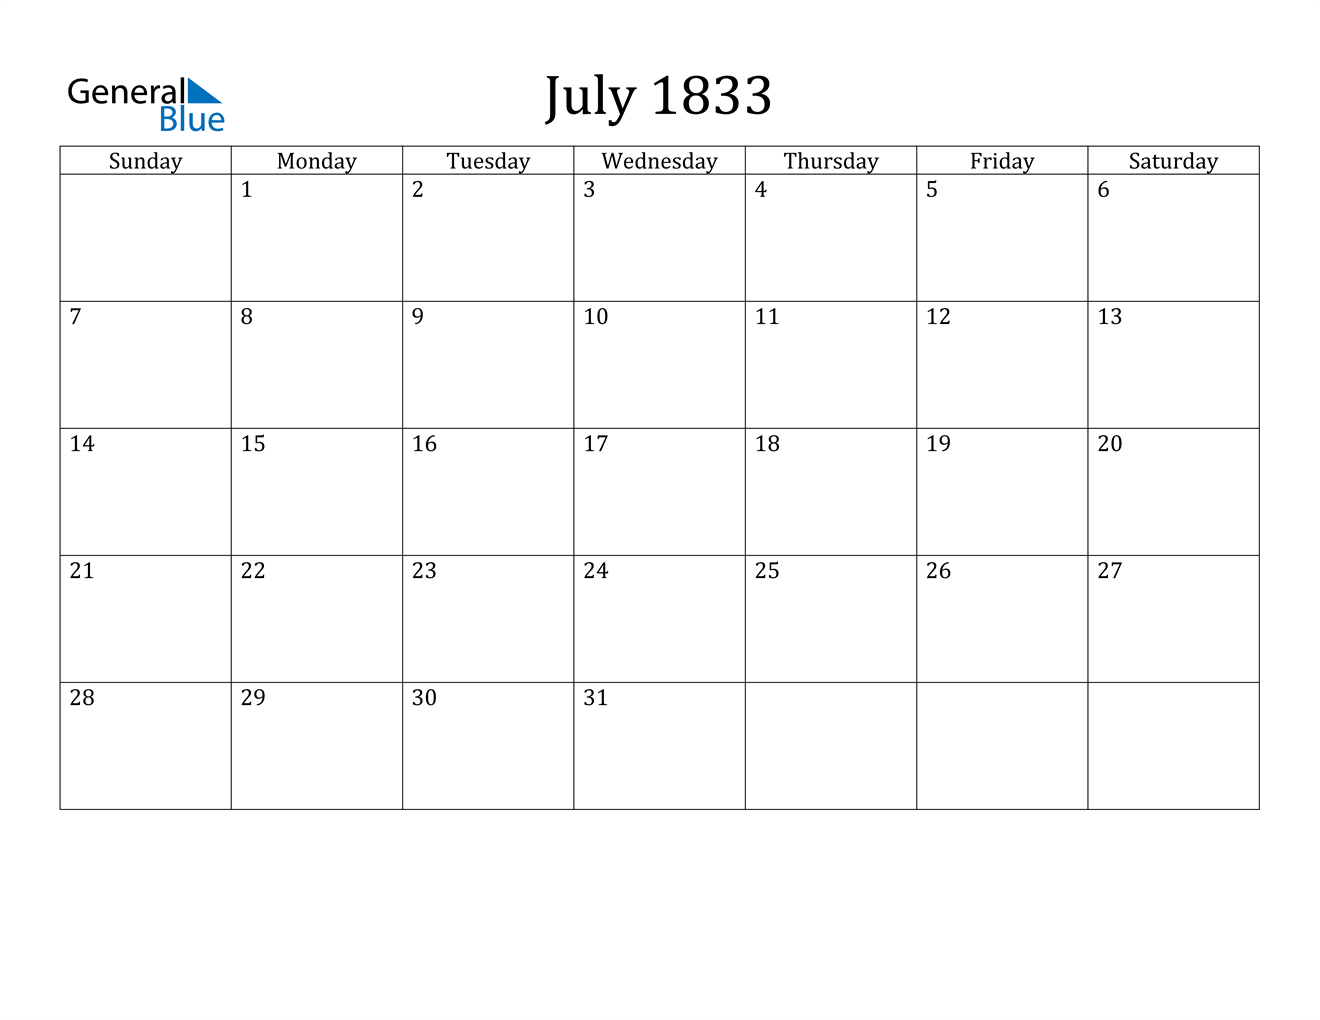 Image of July 1833 Calendar